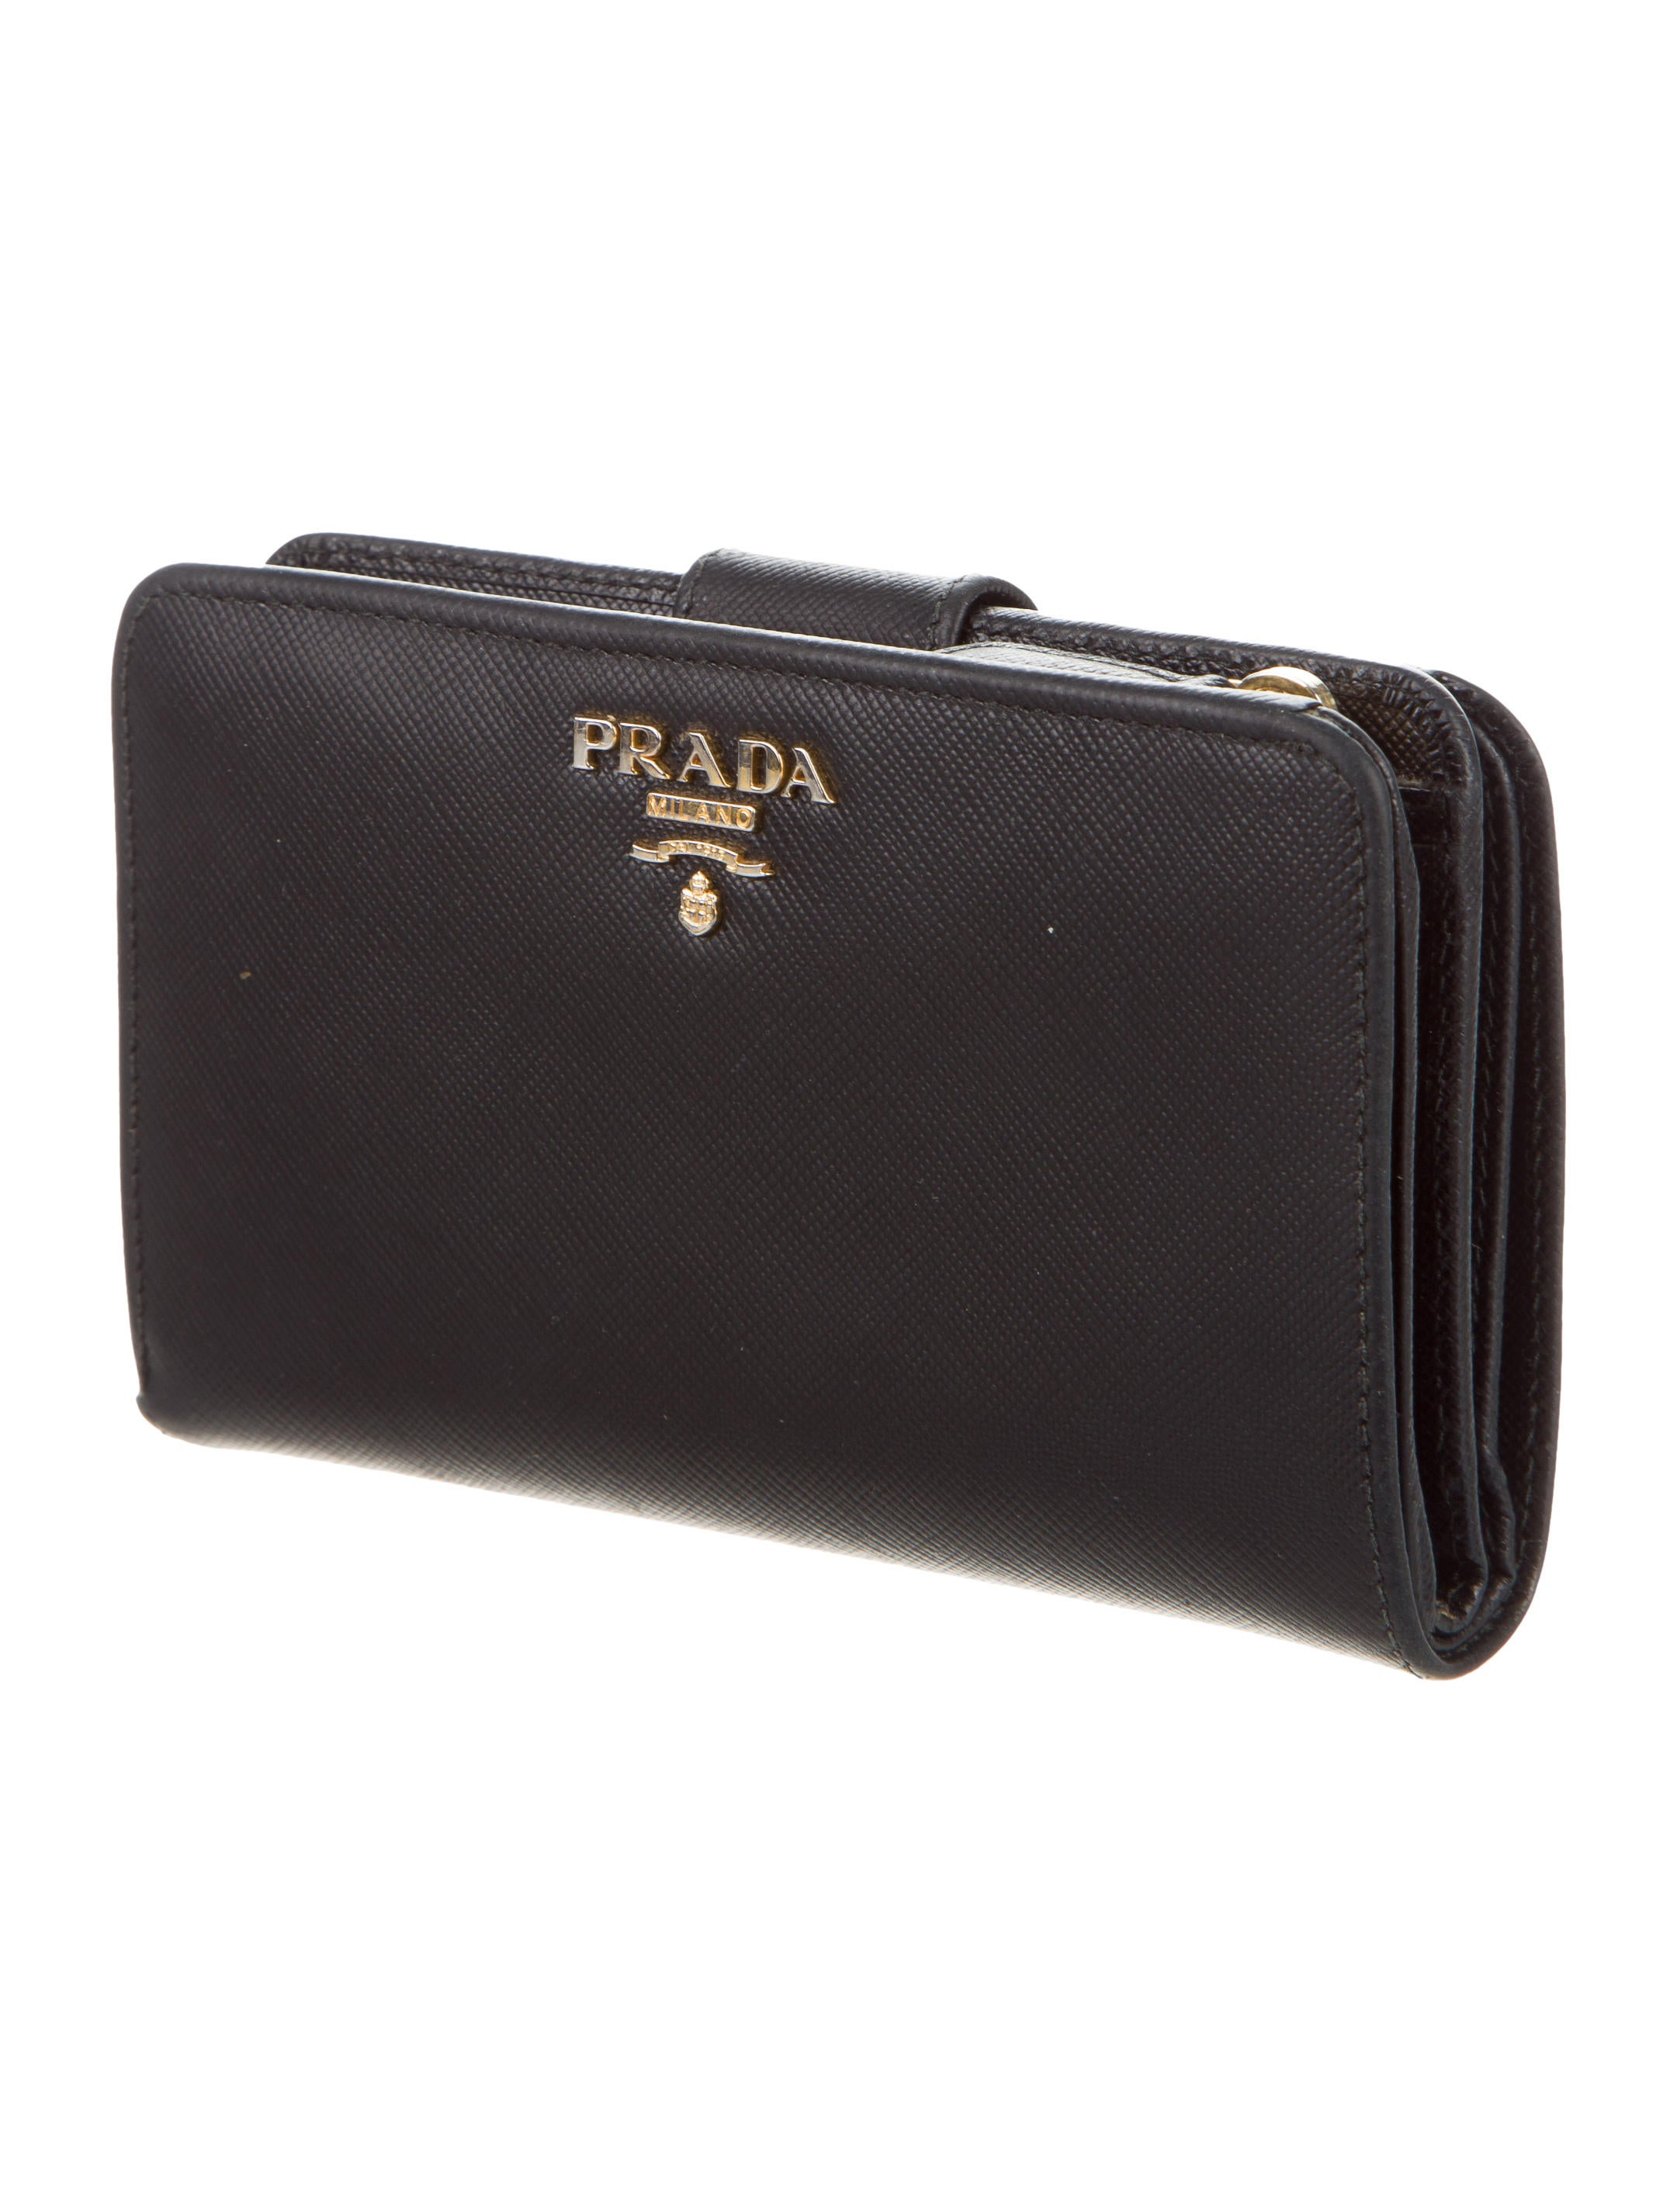 2ddf6ac34015 Prada Small Compact Wallets | Stanford Center for Opportunity Policy ...